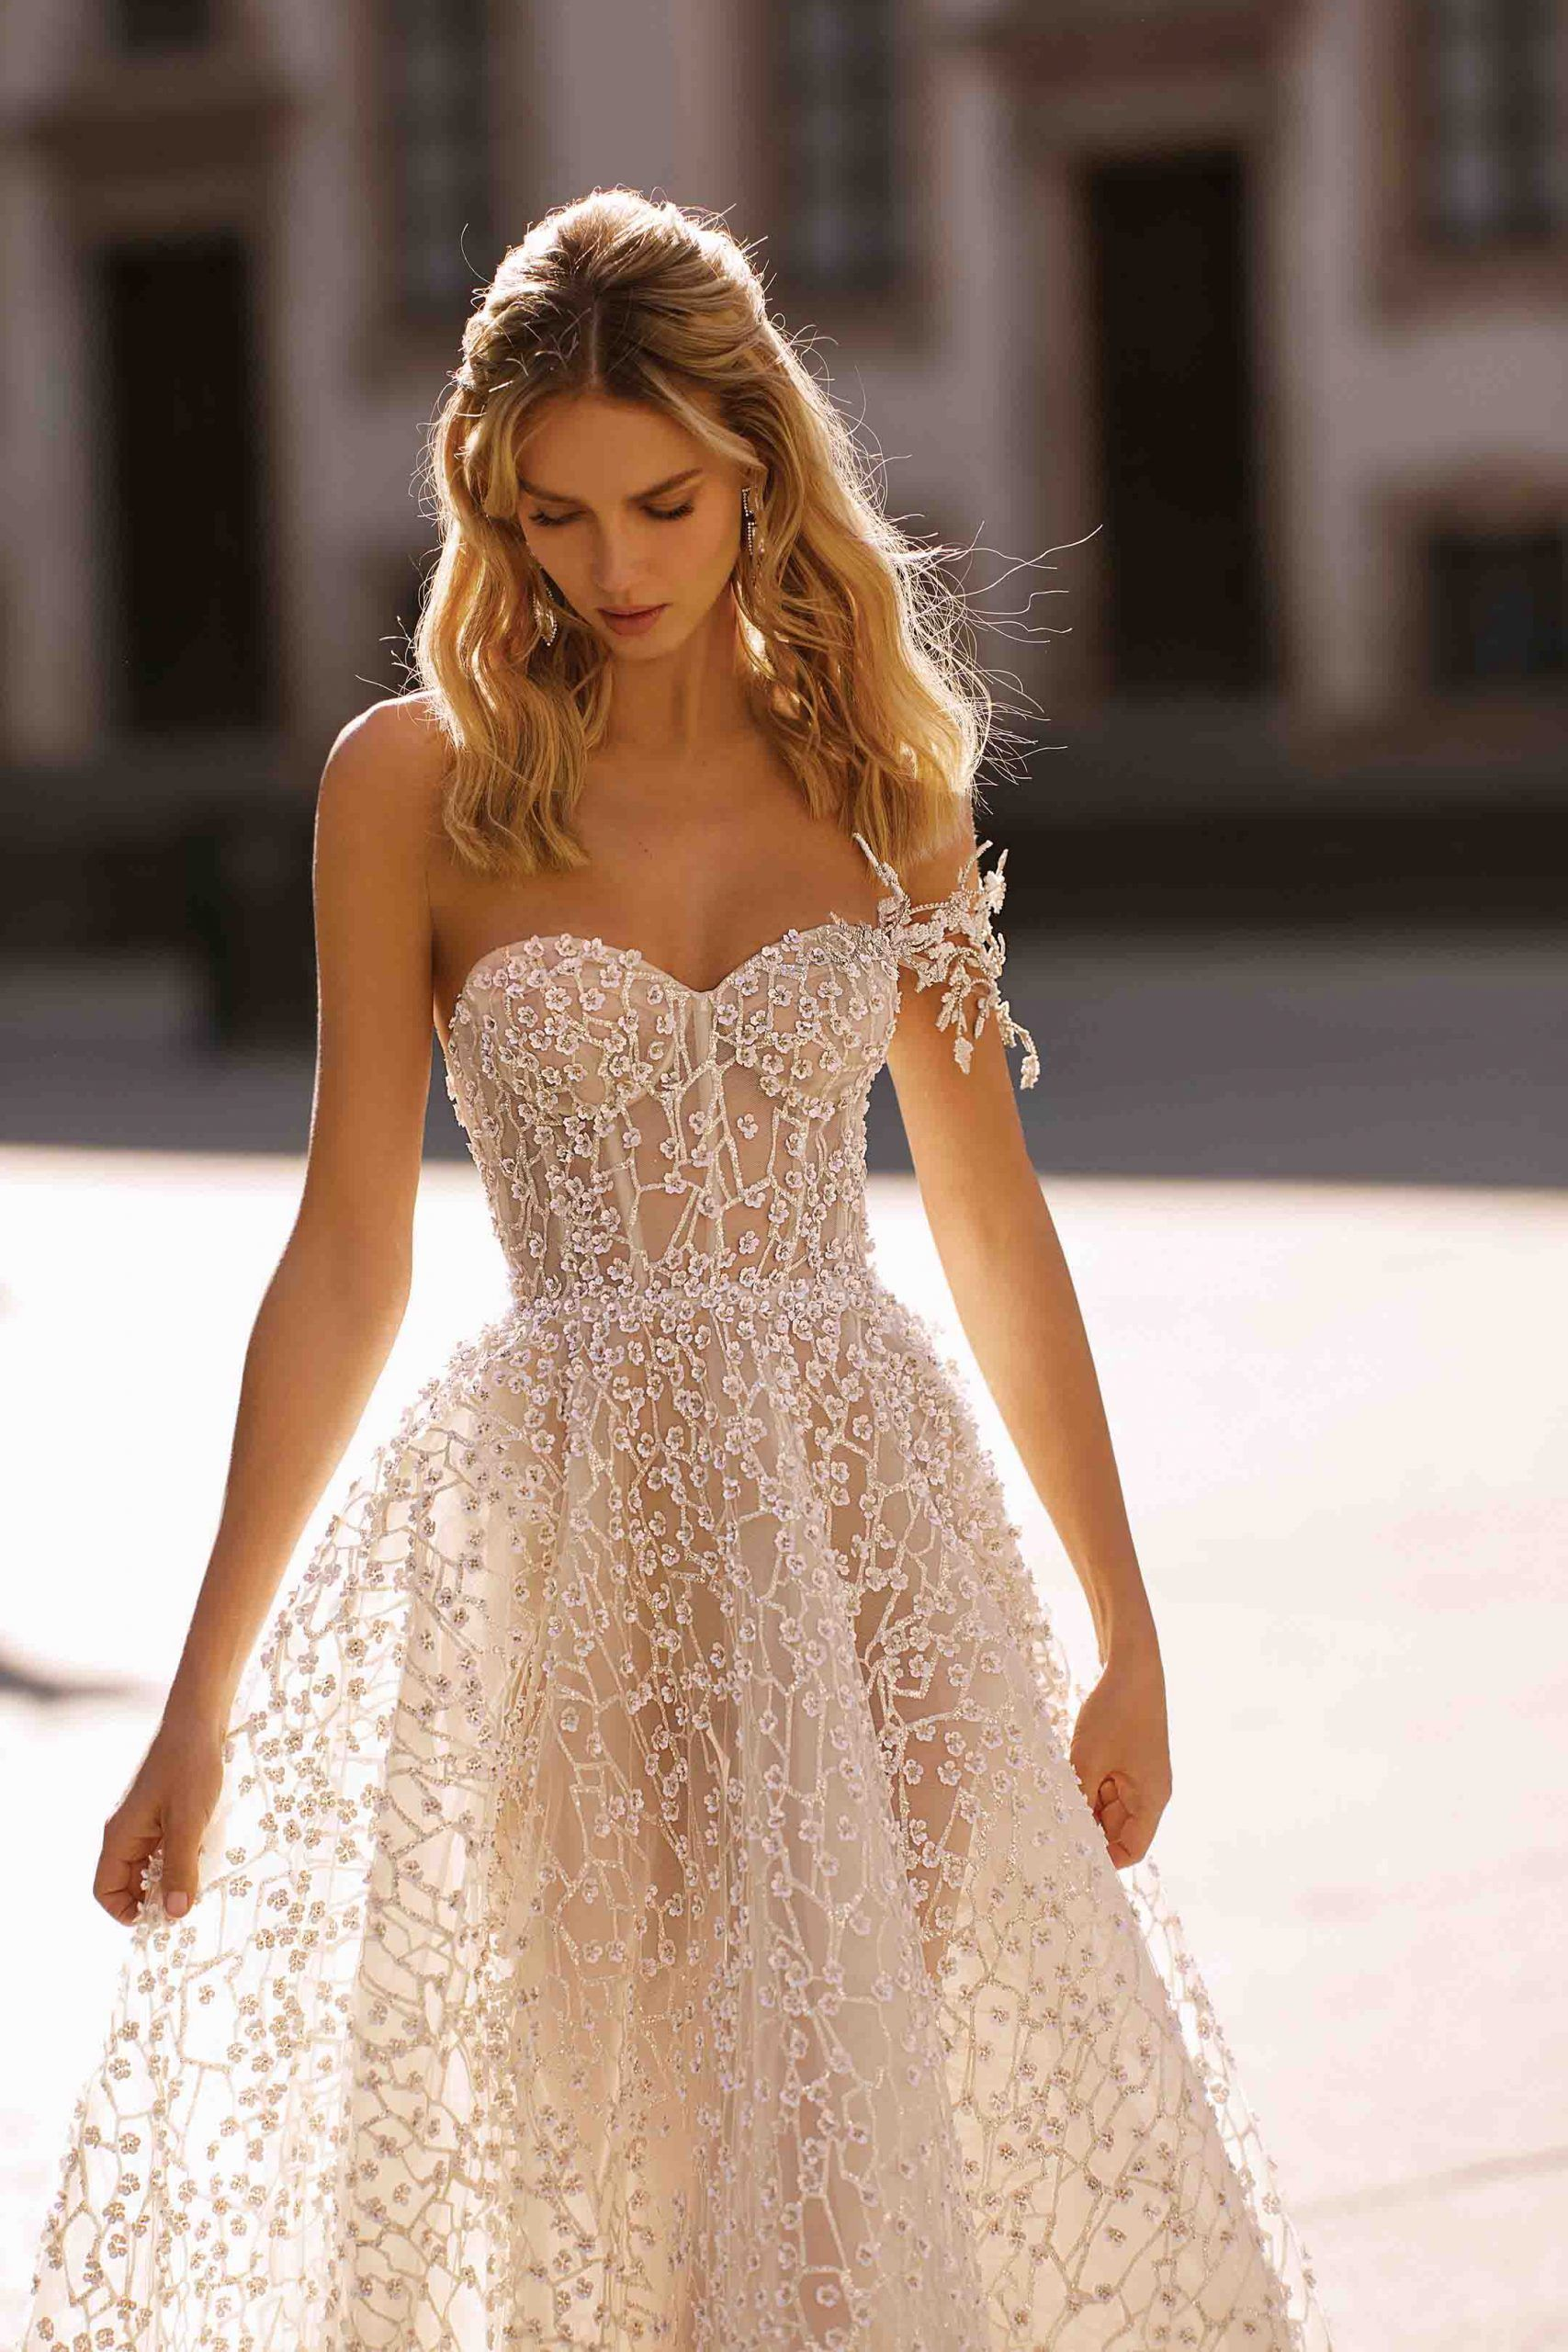 Want to stay on top of 2020's hottest wedding dress styles? Check out these 24 hot picks to get glamorous wedding dress inspiration here.  #2020WeddingDresses #WeddingTrends #ElegantWeddingDresses #DreamWeddingDresses #BertaBridal